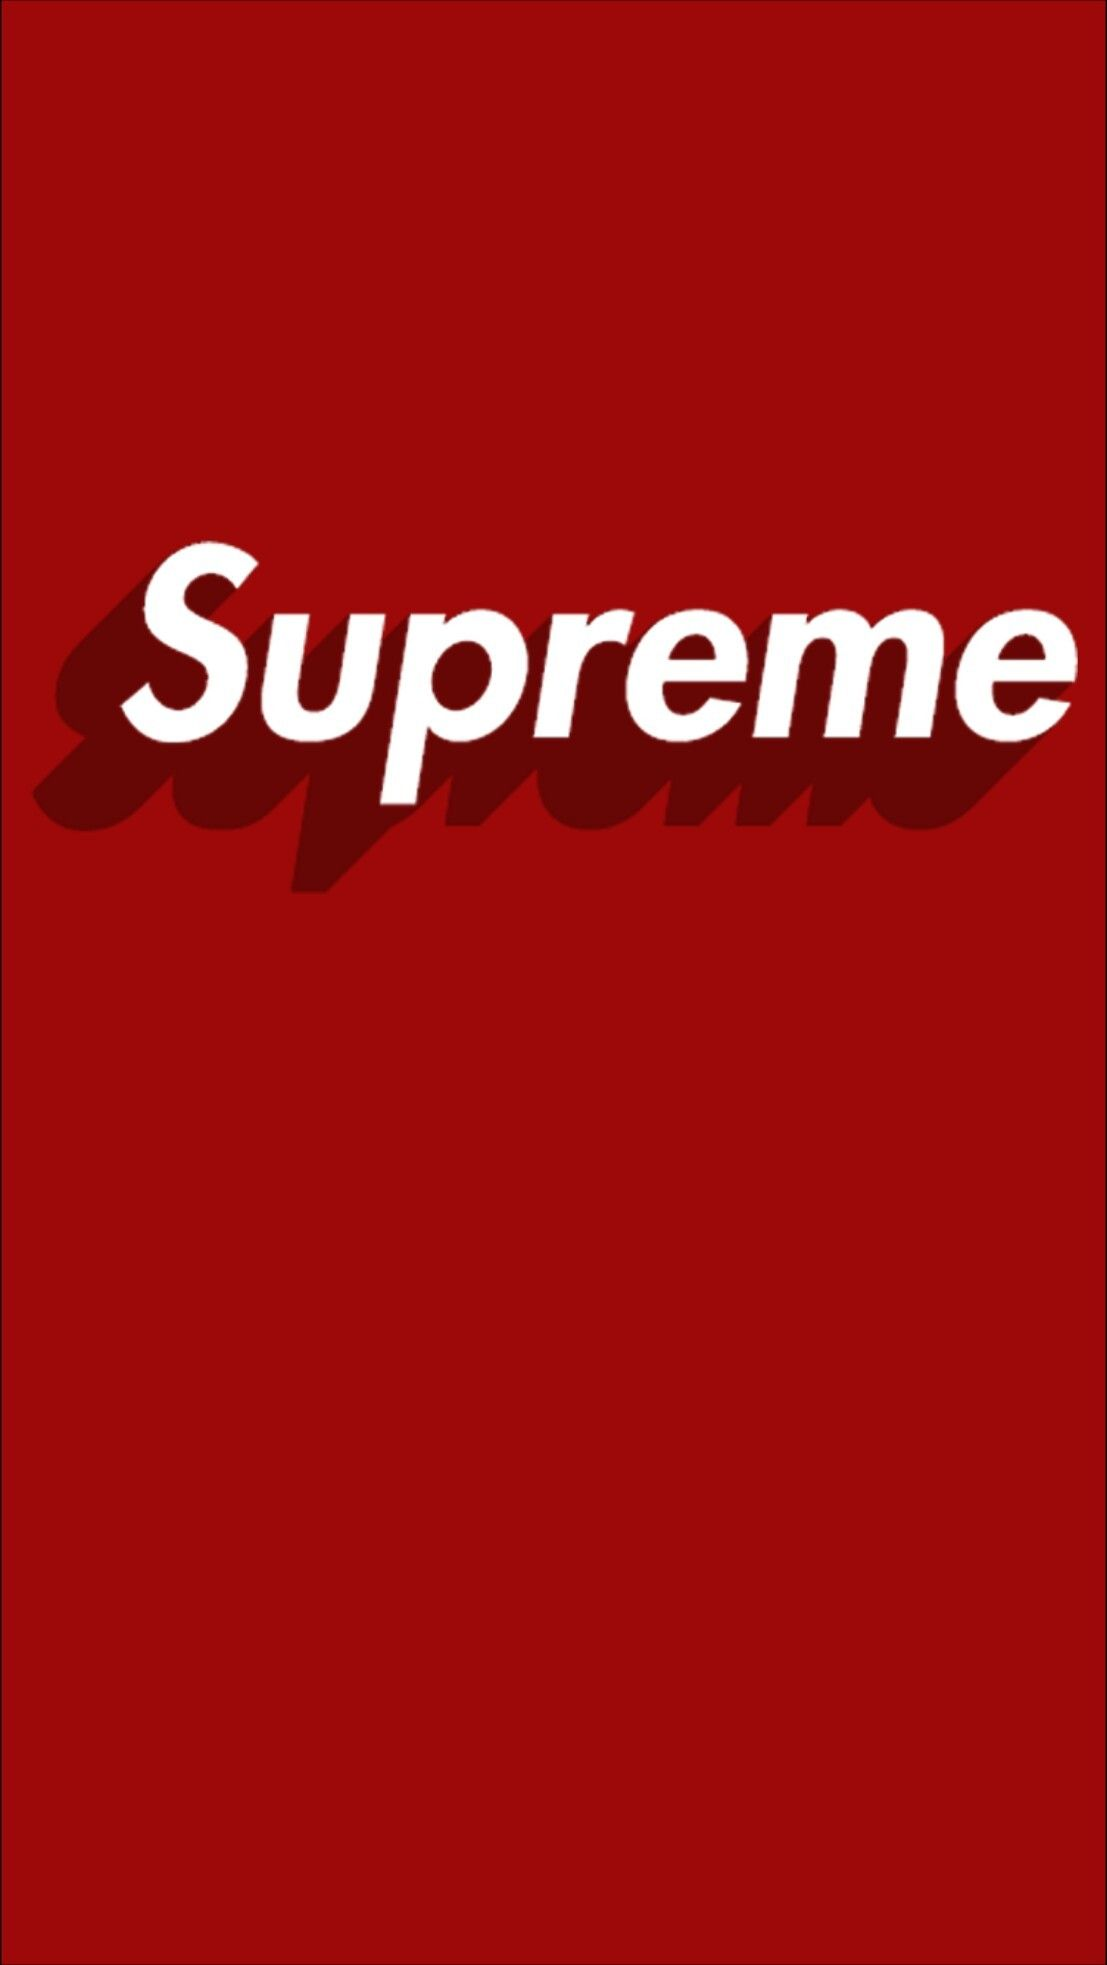 Supreme Iphone X Wallpapers Top Free Supreme Iphone X